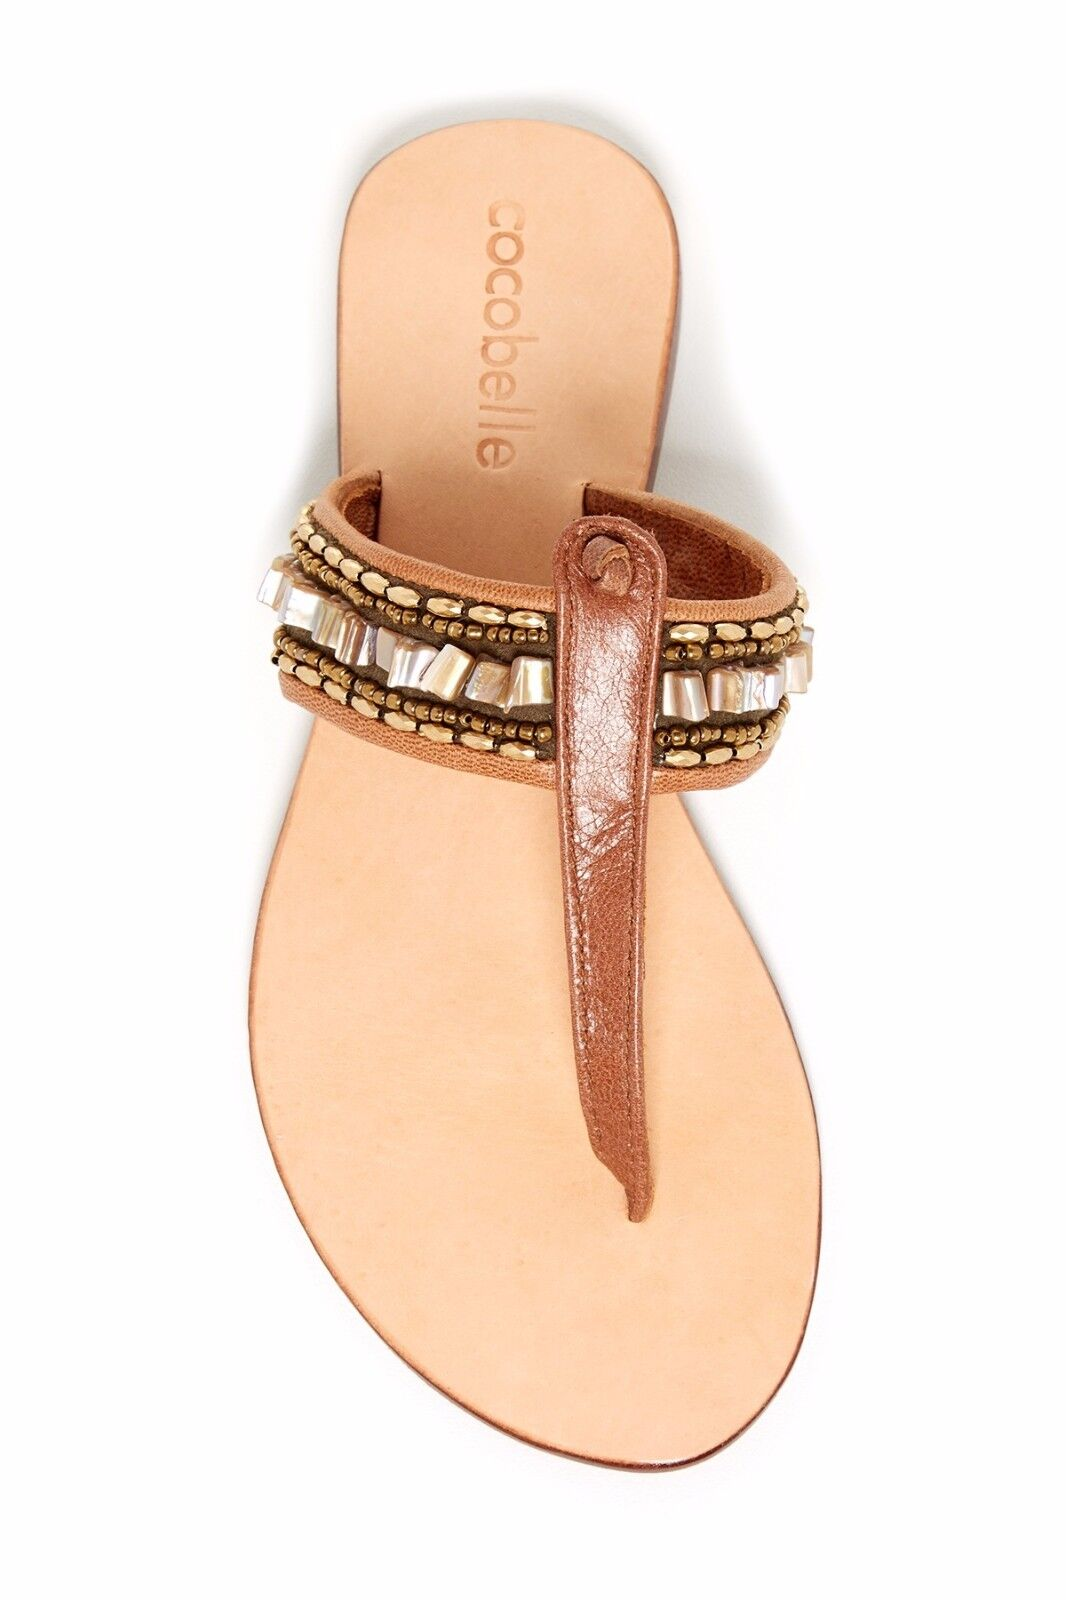 New Cocobelle Sunrise Natural  Sandals hand made  size 9